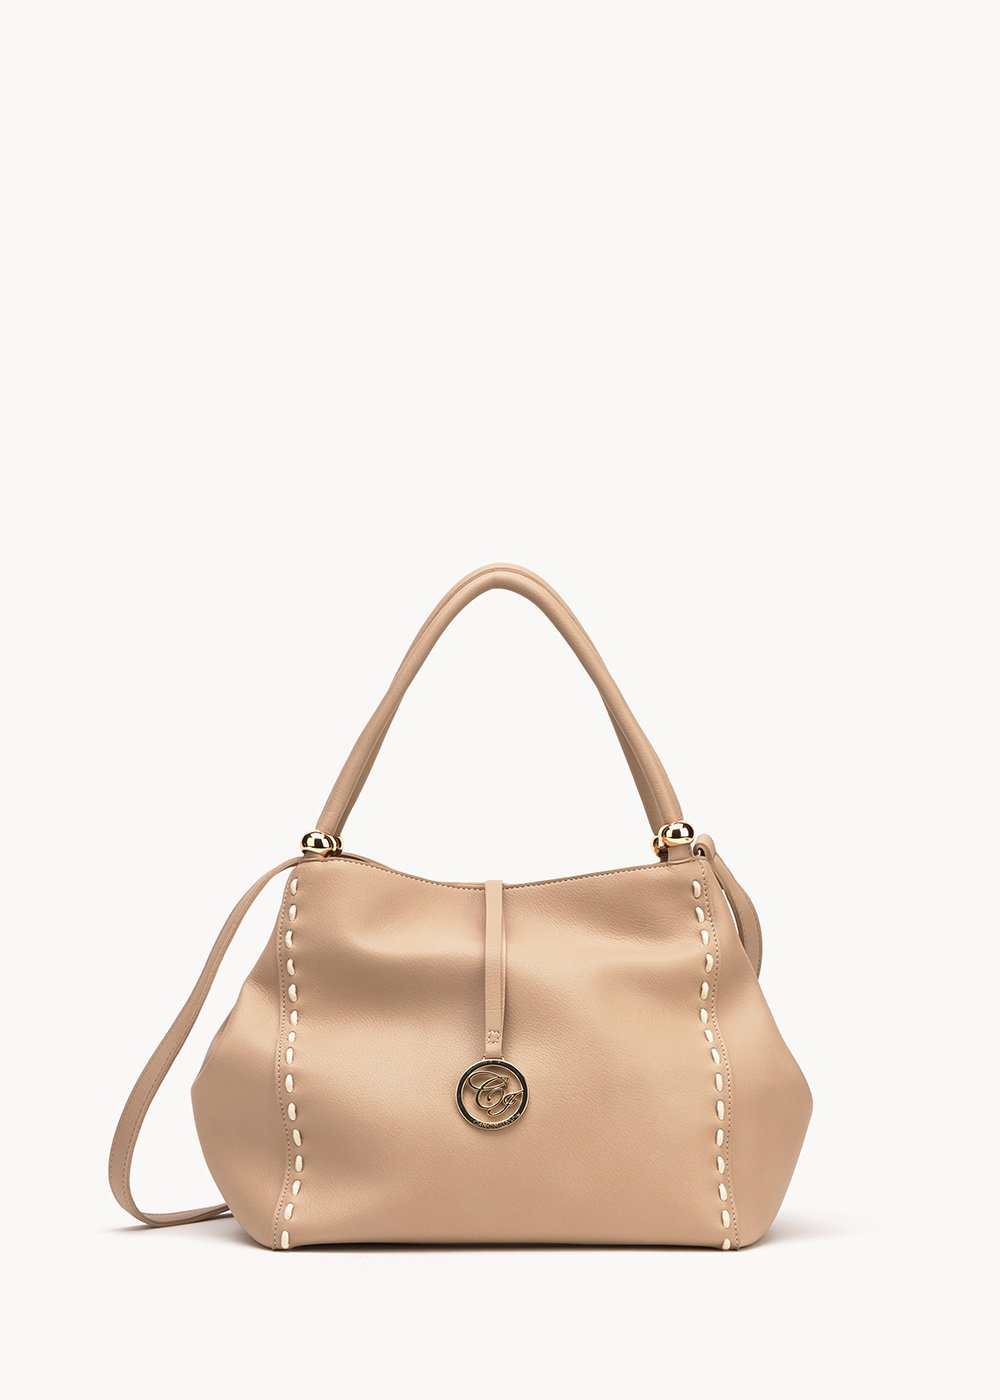 Betsy bag with contrasting stitching - Light Beige - Woman